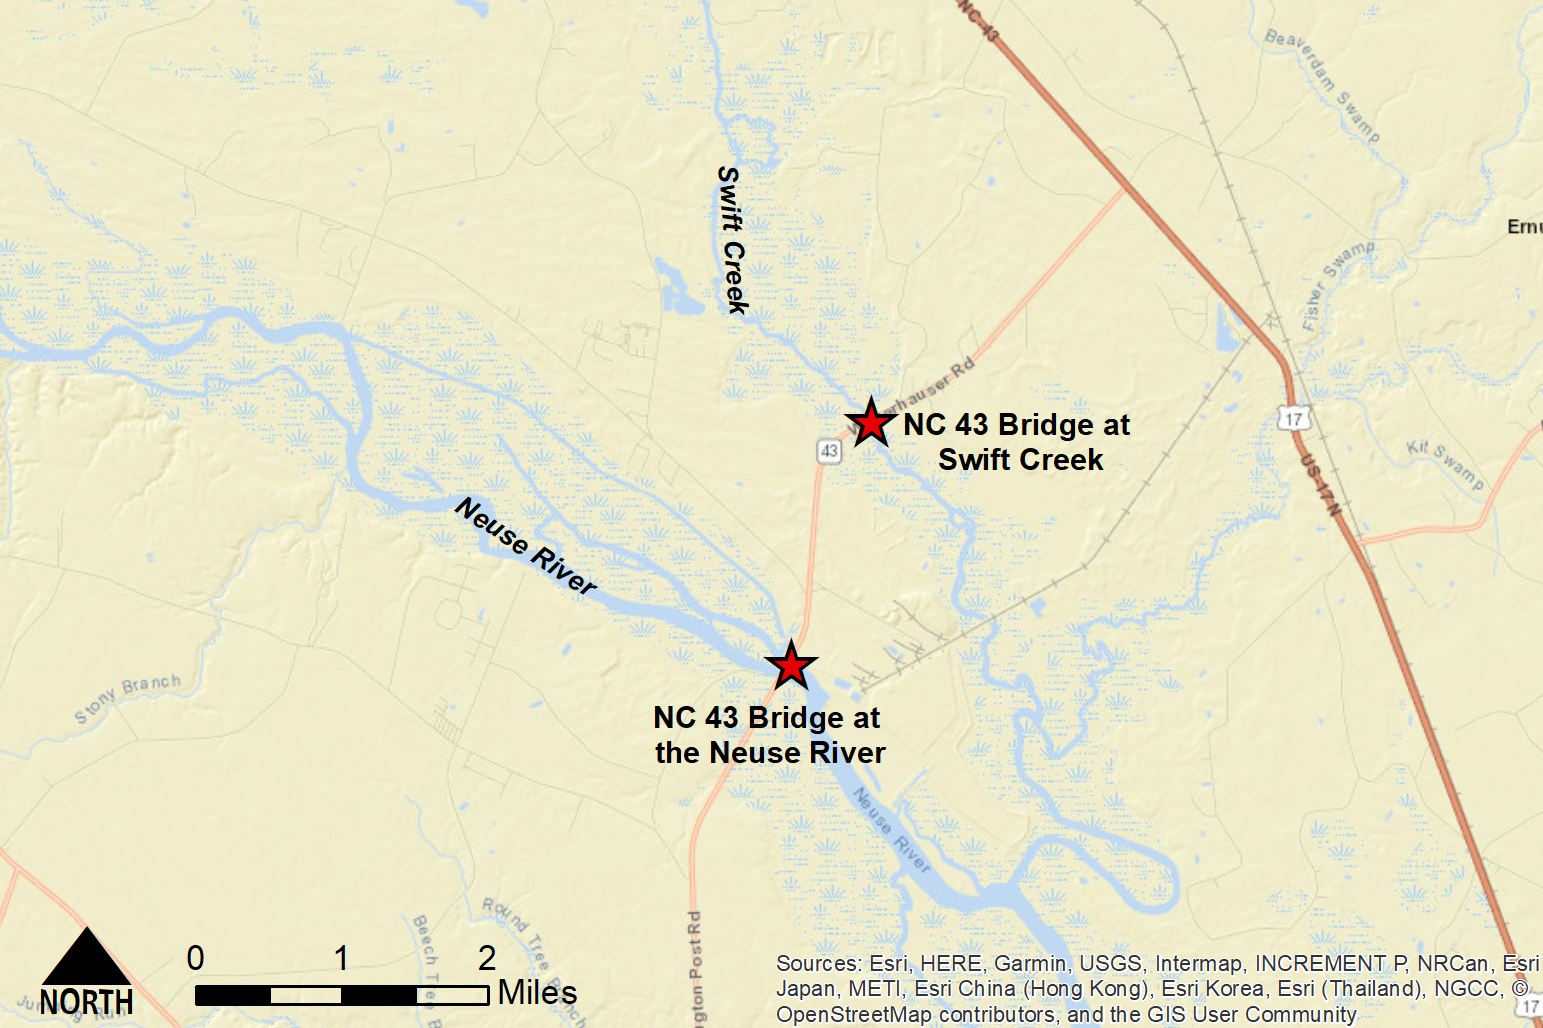 Street map of Craven County bridges investigated in the modeling study.